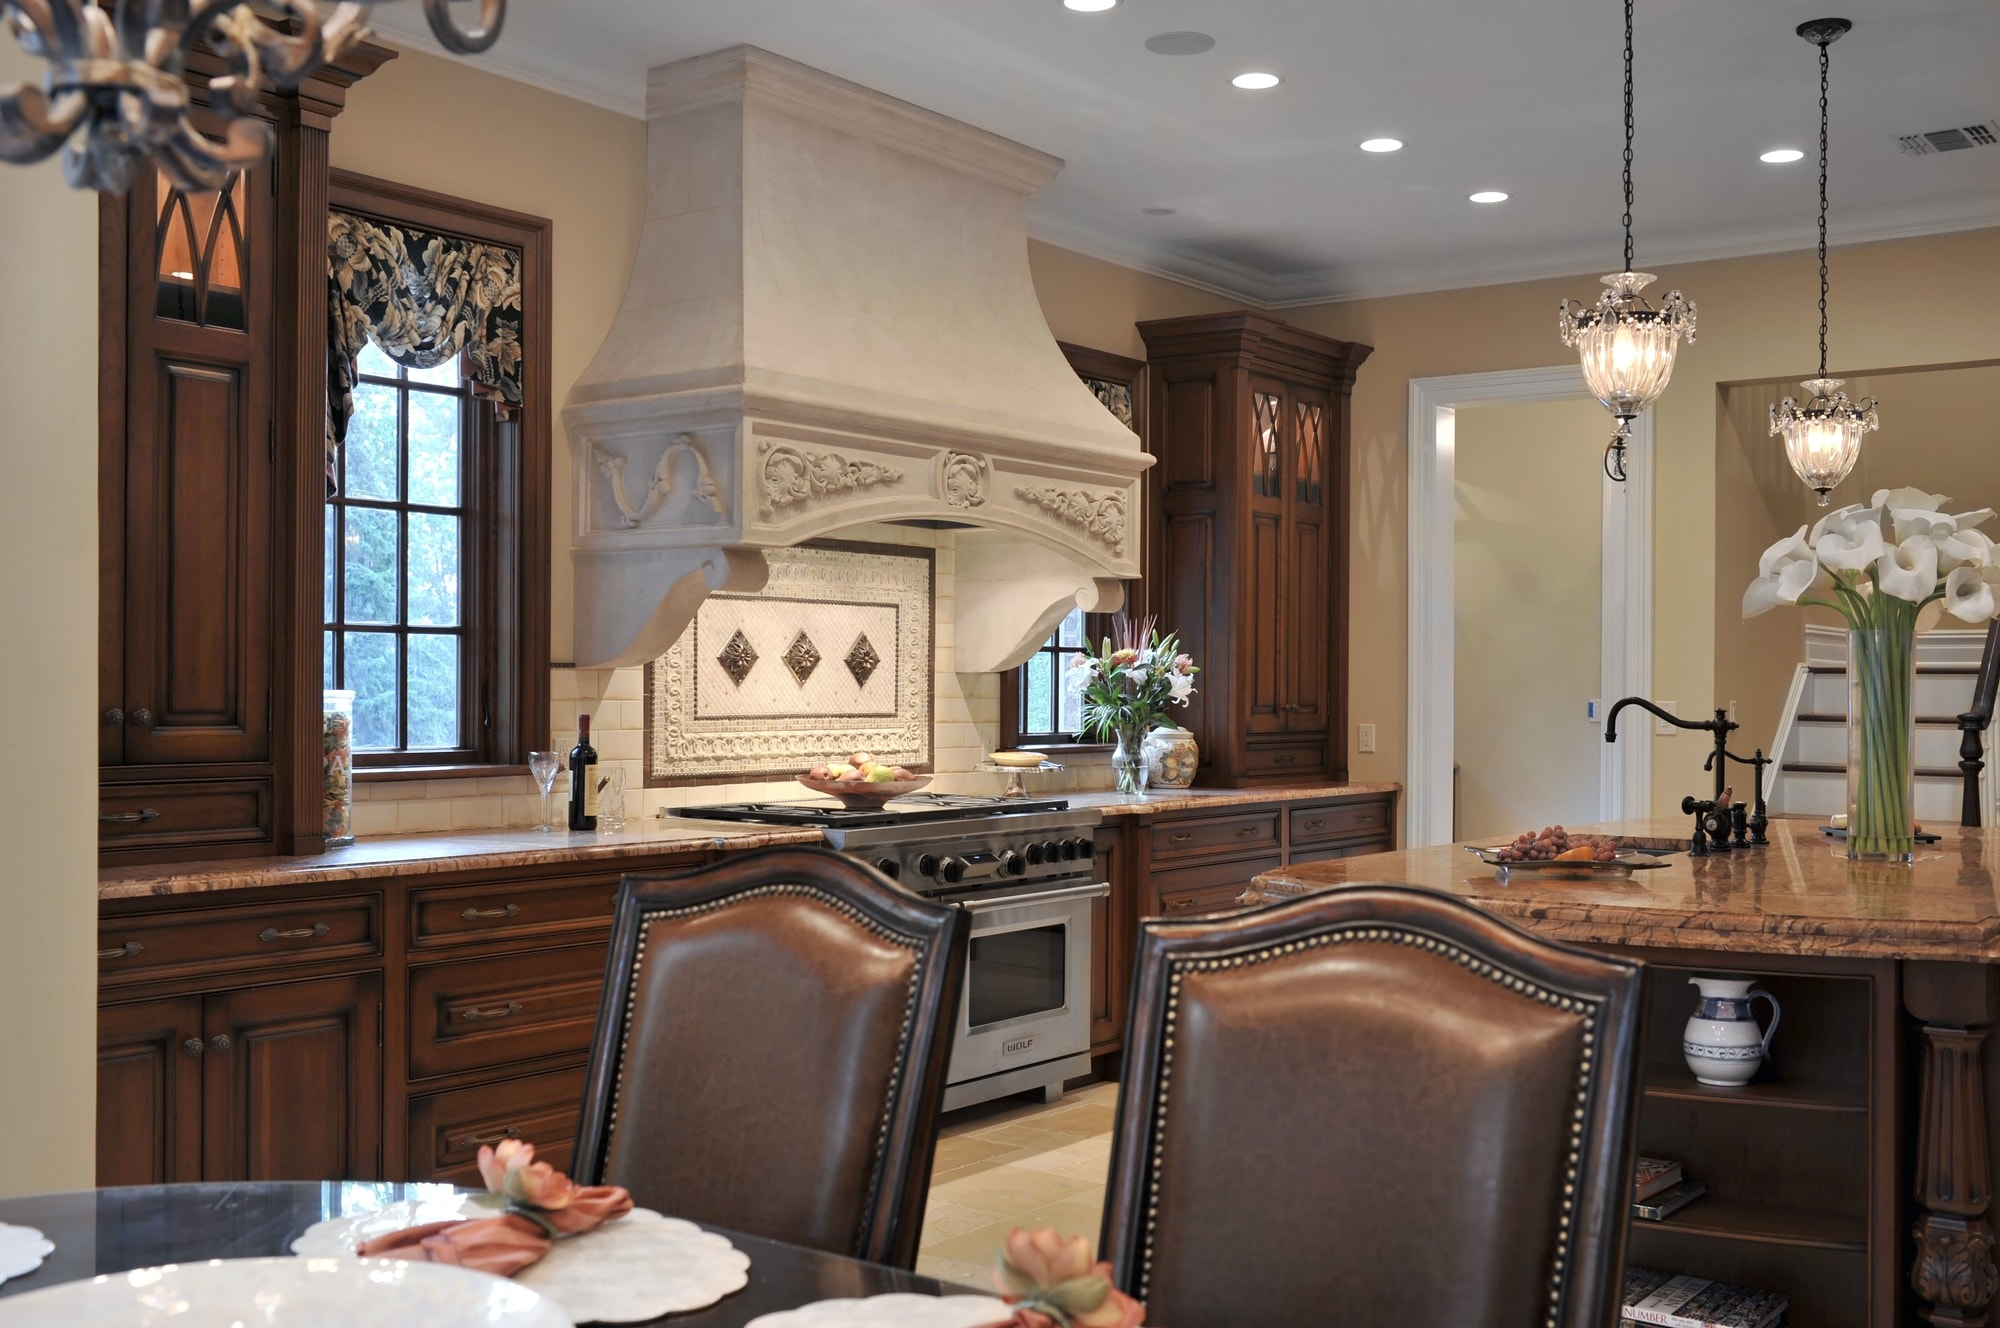 Traditional style kitchen with stylish french windows